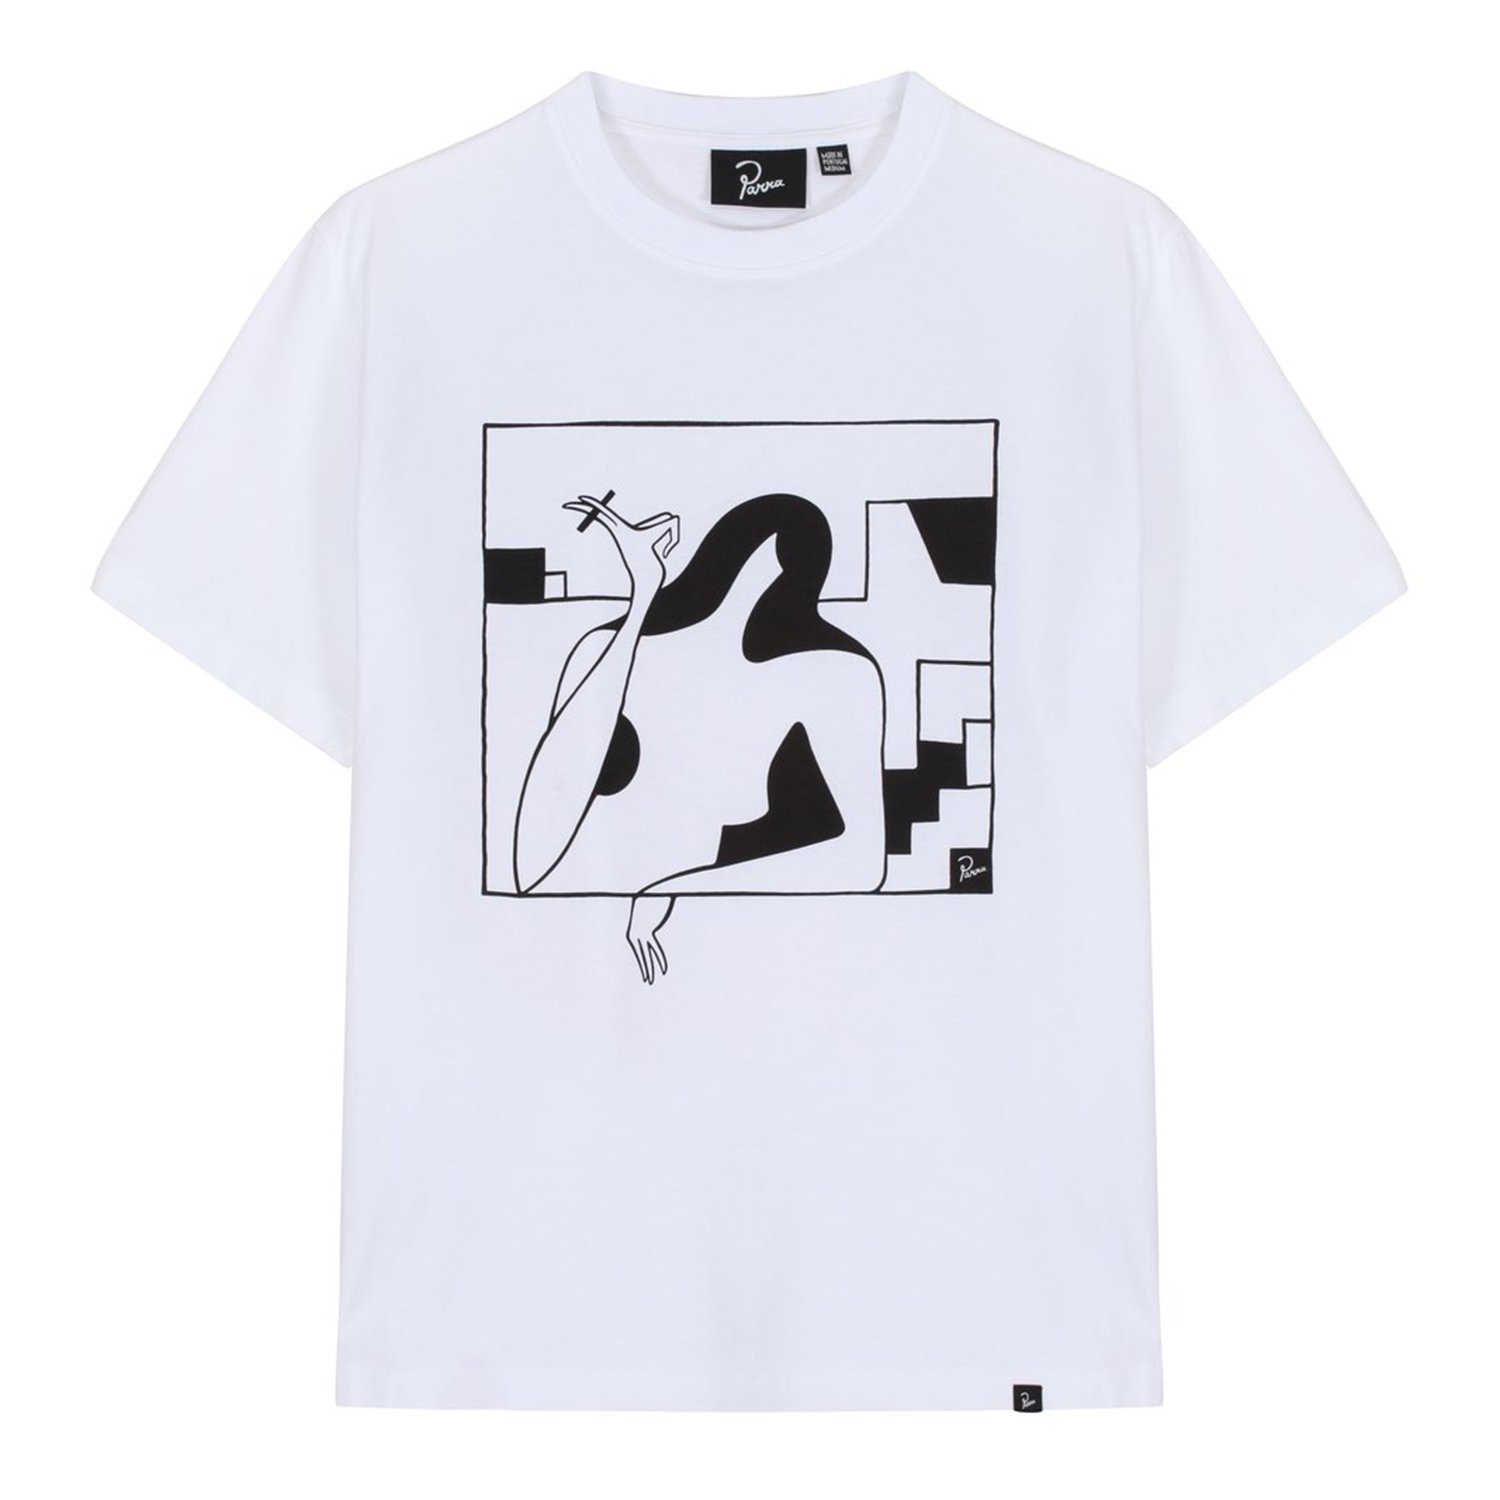 <img class='new_mark_img1' src='https://img.shop-pro.jp/img/new/icons8.gif' style='border:none;display:inline;margin:0px;padding:0px;width:auto;' />Parra パラ / lockdown t-shirt